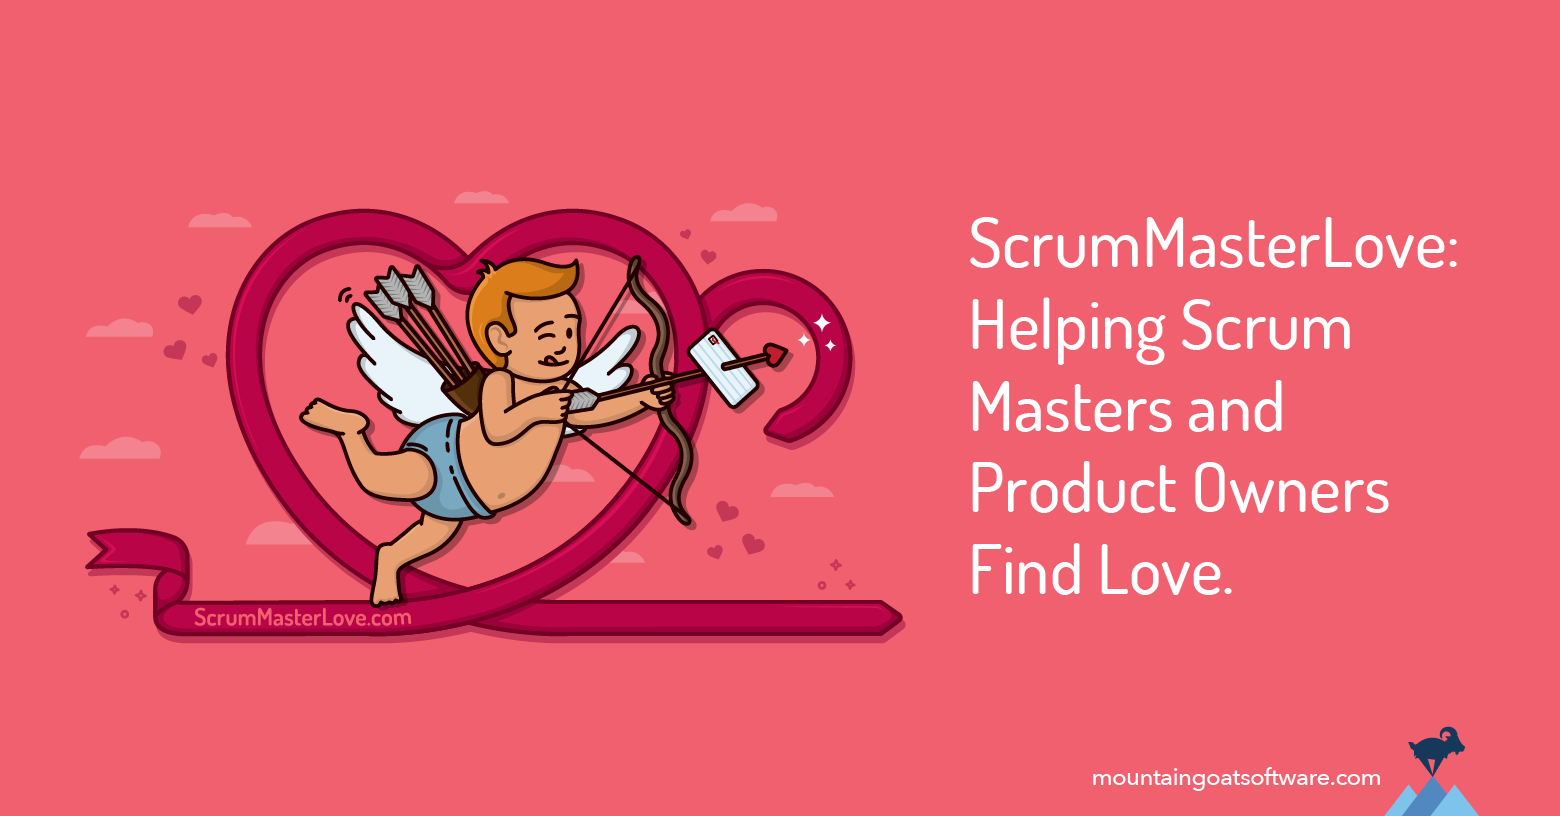 Announcing Online Dating Just for Scrum Masters and Product Owners